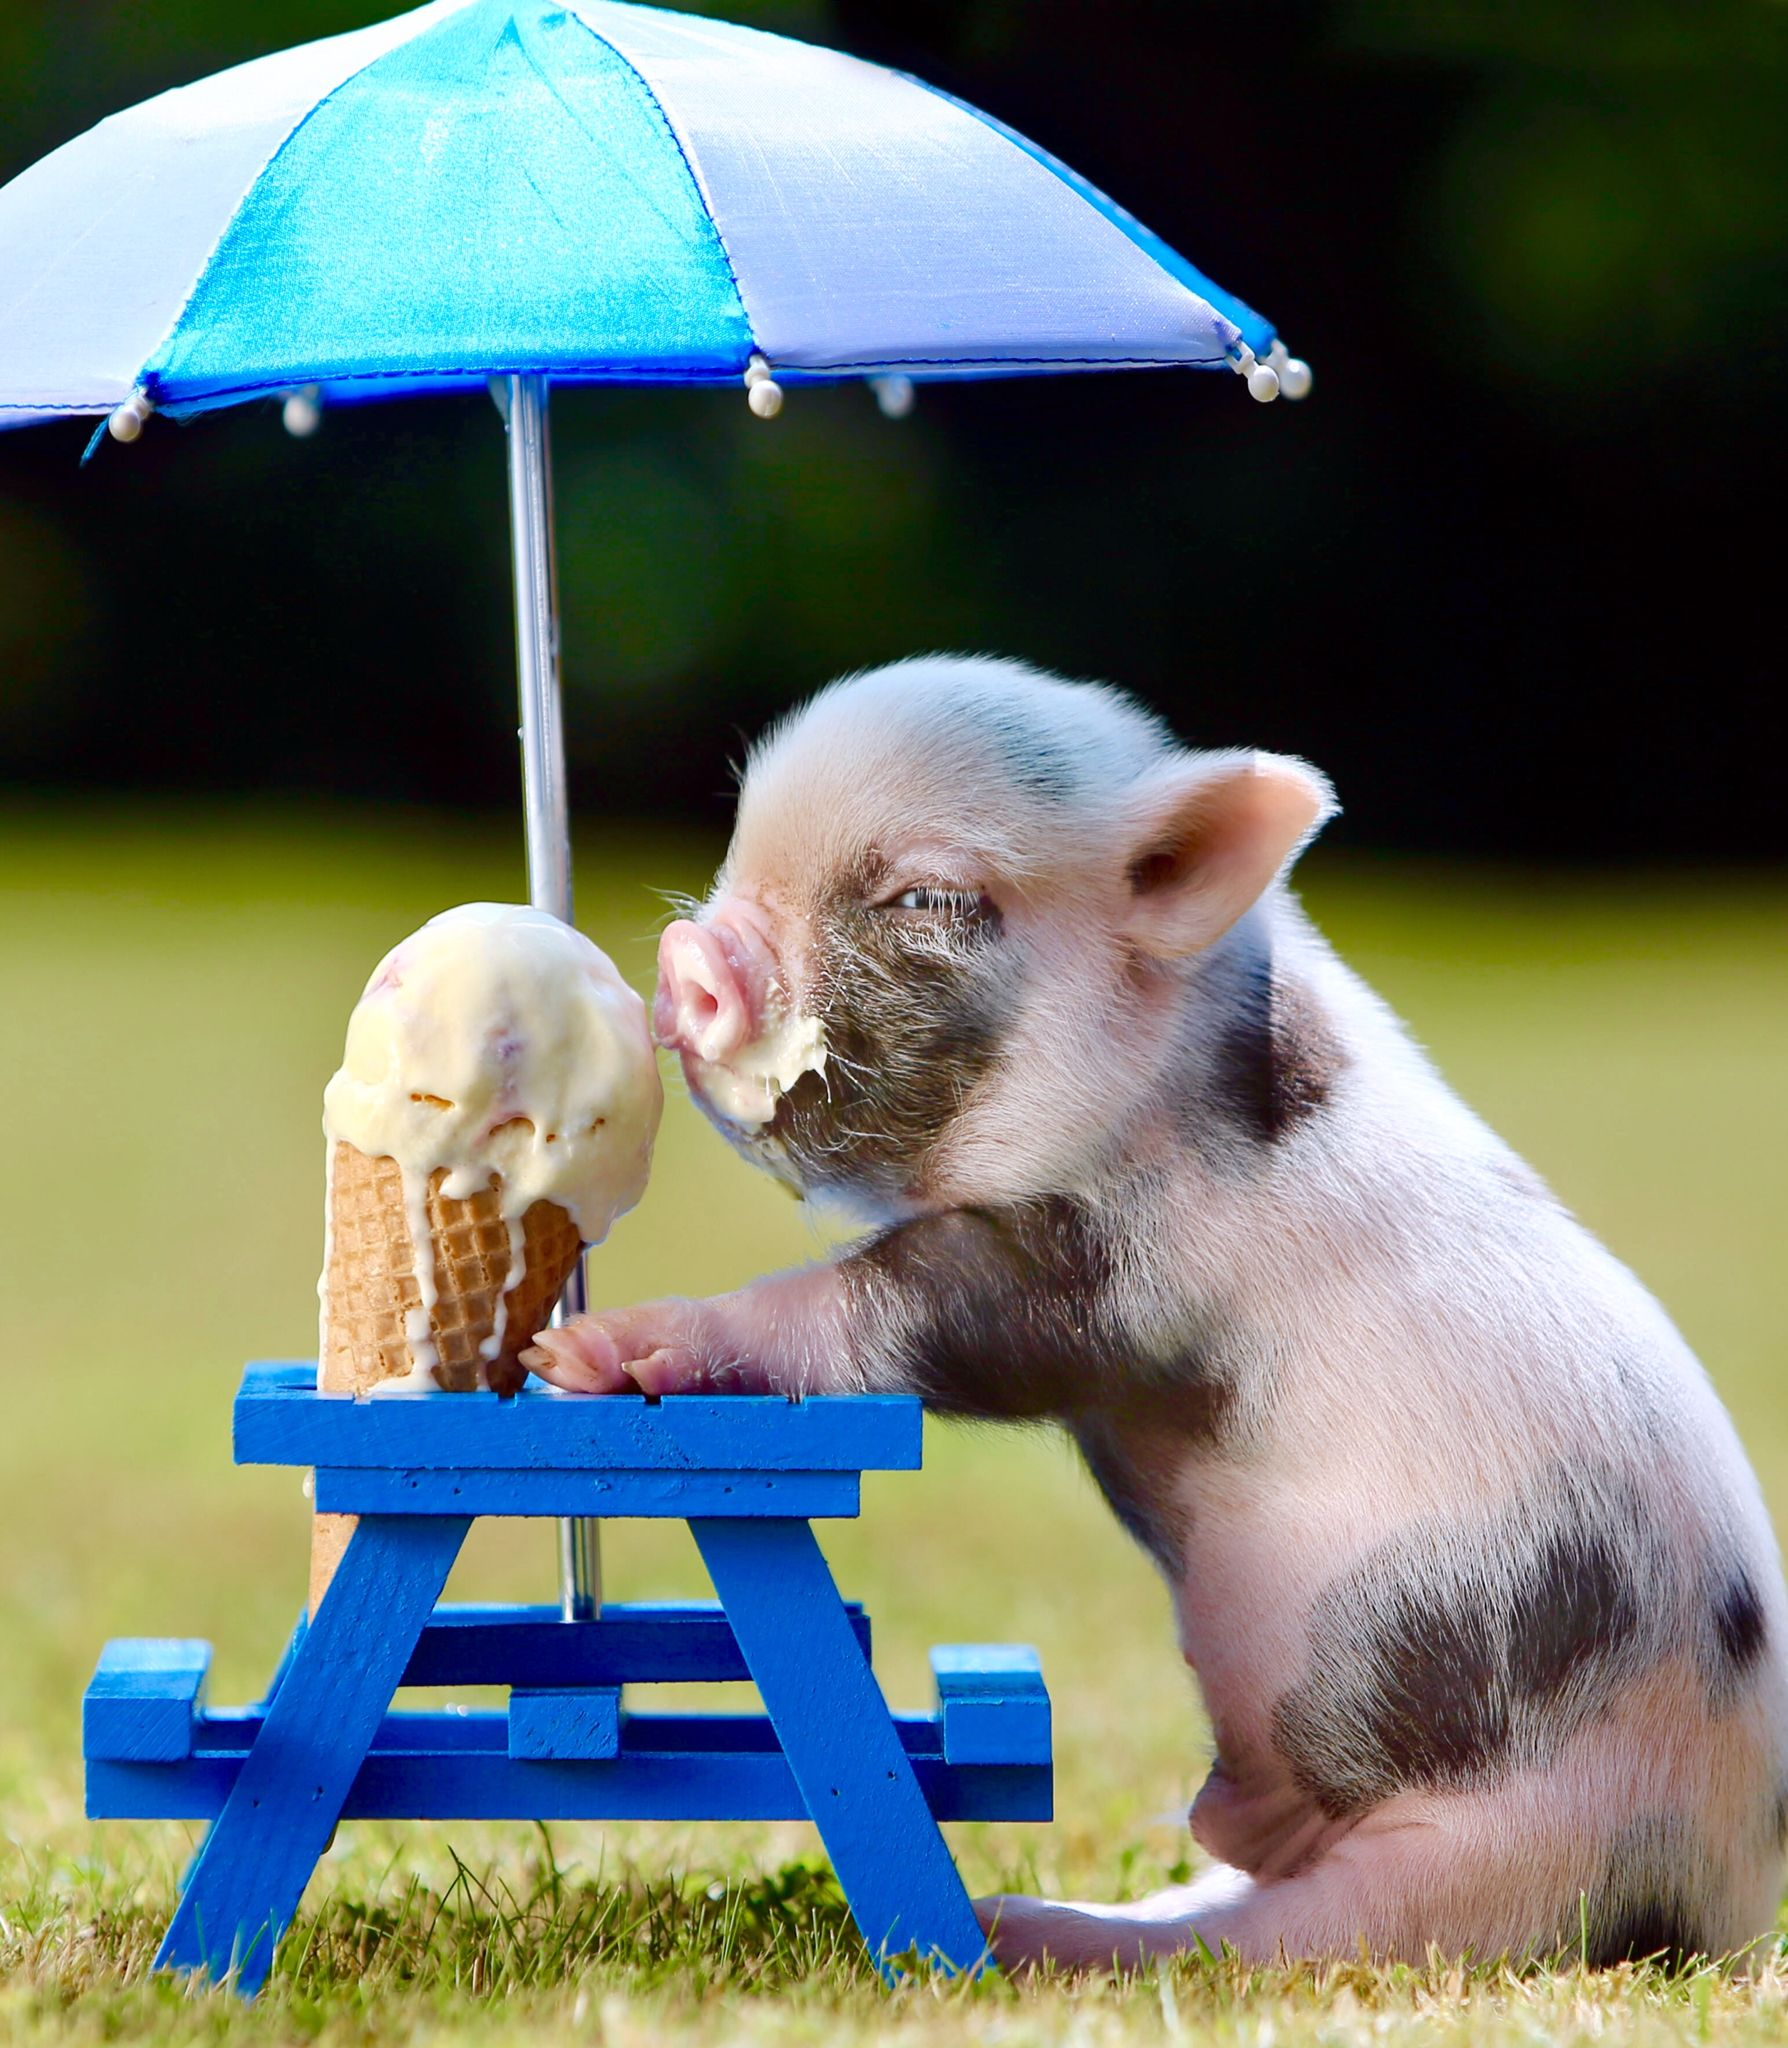 Pig eating ice cream Cute animals, Cute baby animals